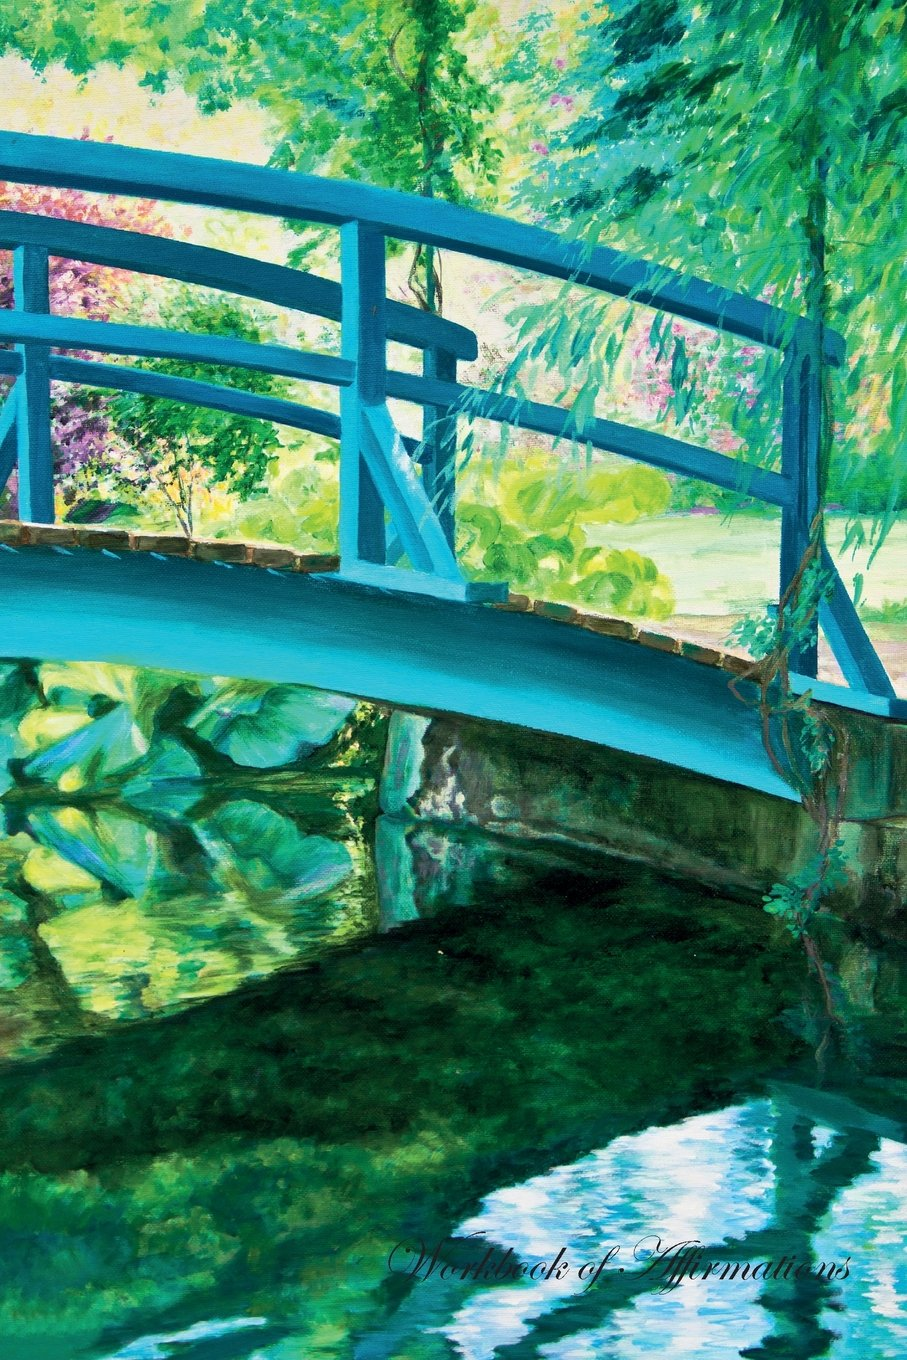 Monets Japanese Bridge at Giverny Workbook of Affirmations Monets Japanese Bridge at Giverny Workbook of Affirmations: Bullet Journal, Food Diary, ... To Do List, Scrapbook, Academic Notepad pdf